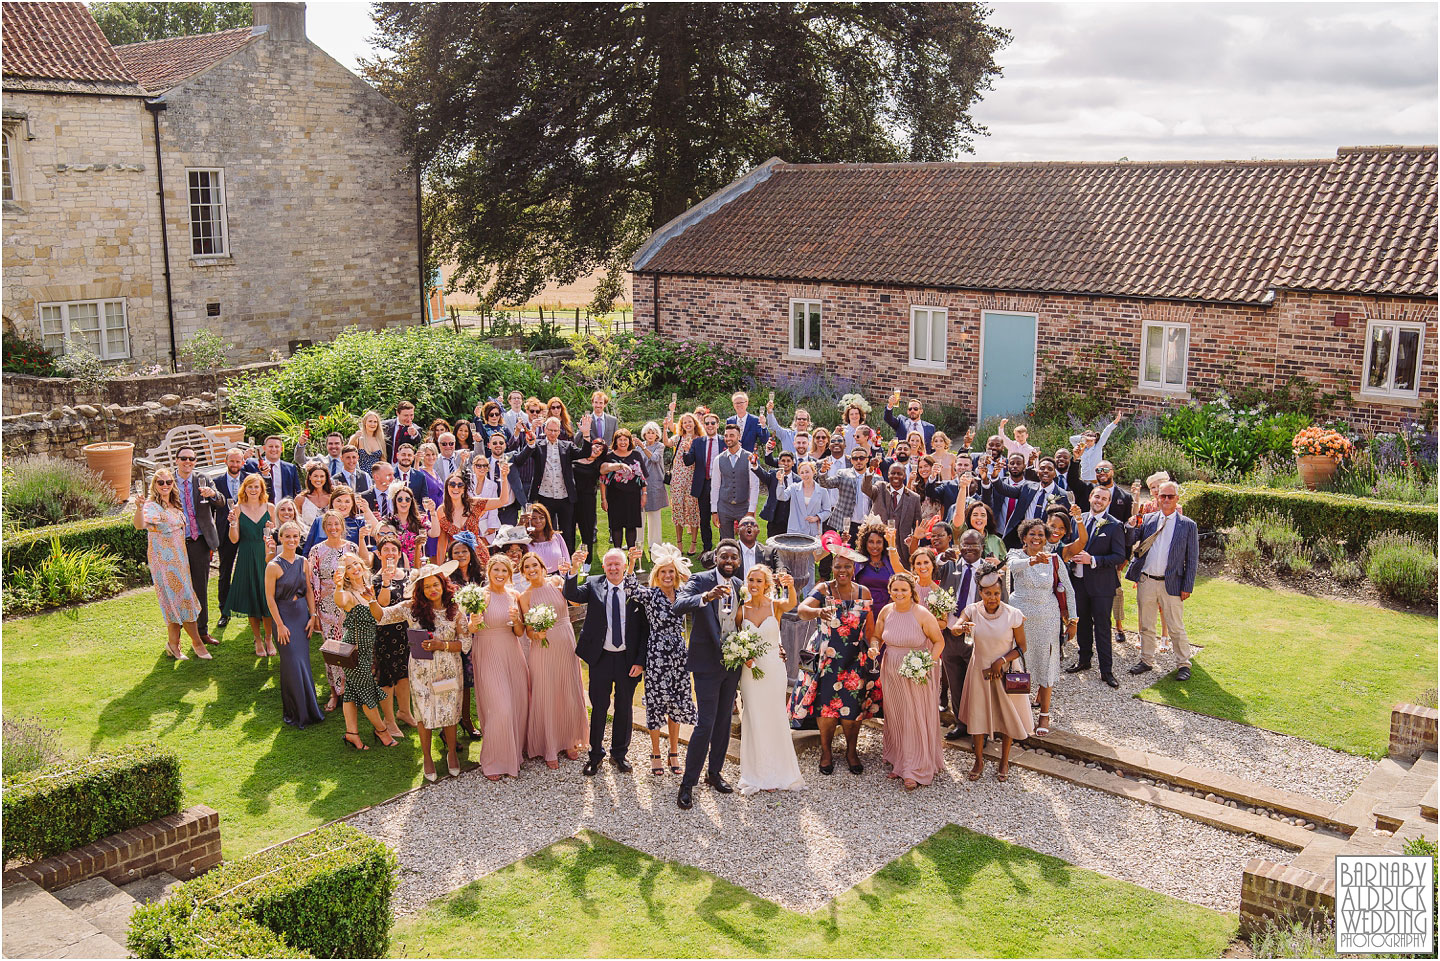 A group photo of everyone at Priory Cottages in Yorkshire, Wedding photos at Priory Cottages, Wedding at The Priory Yorkshire